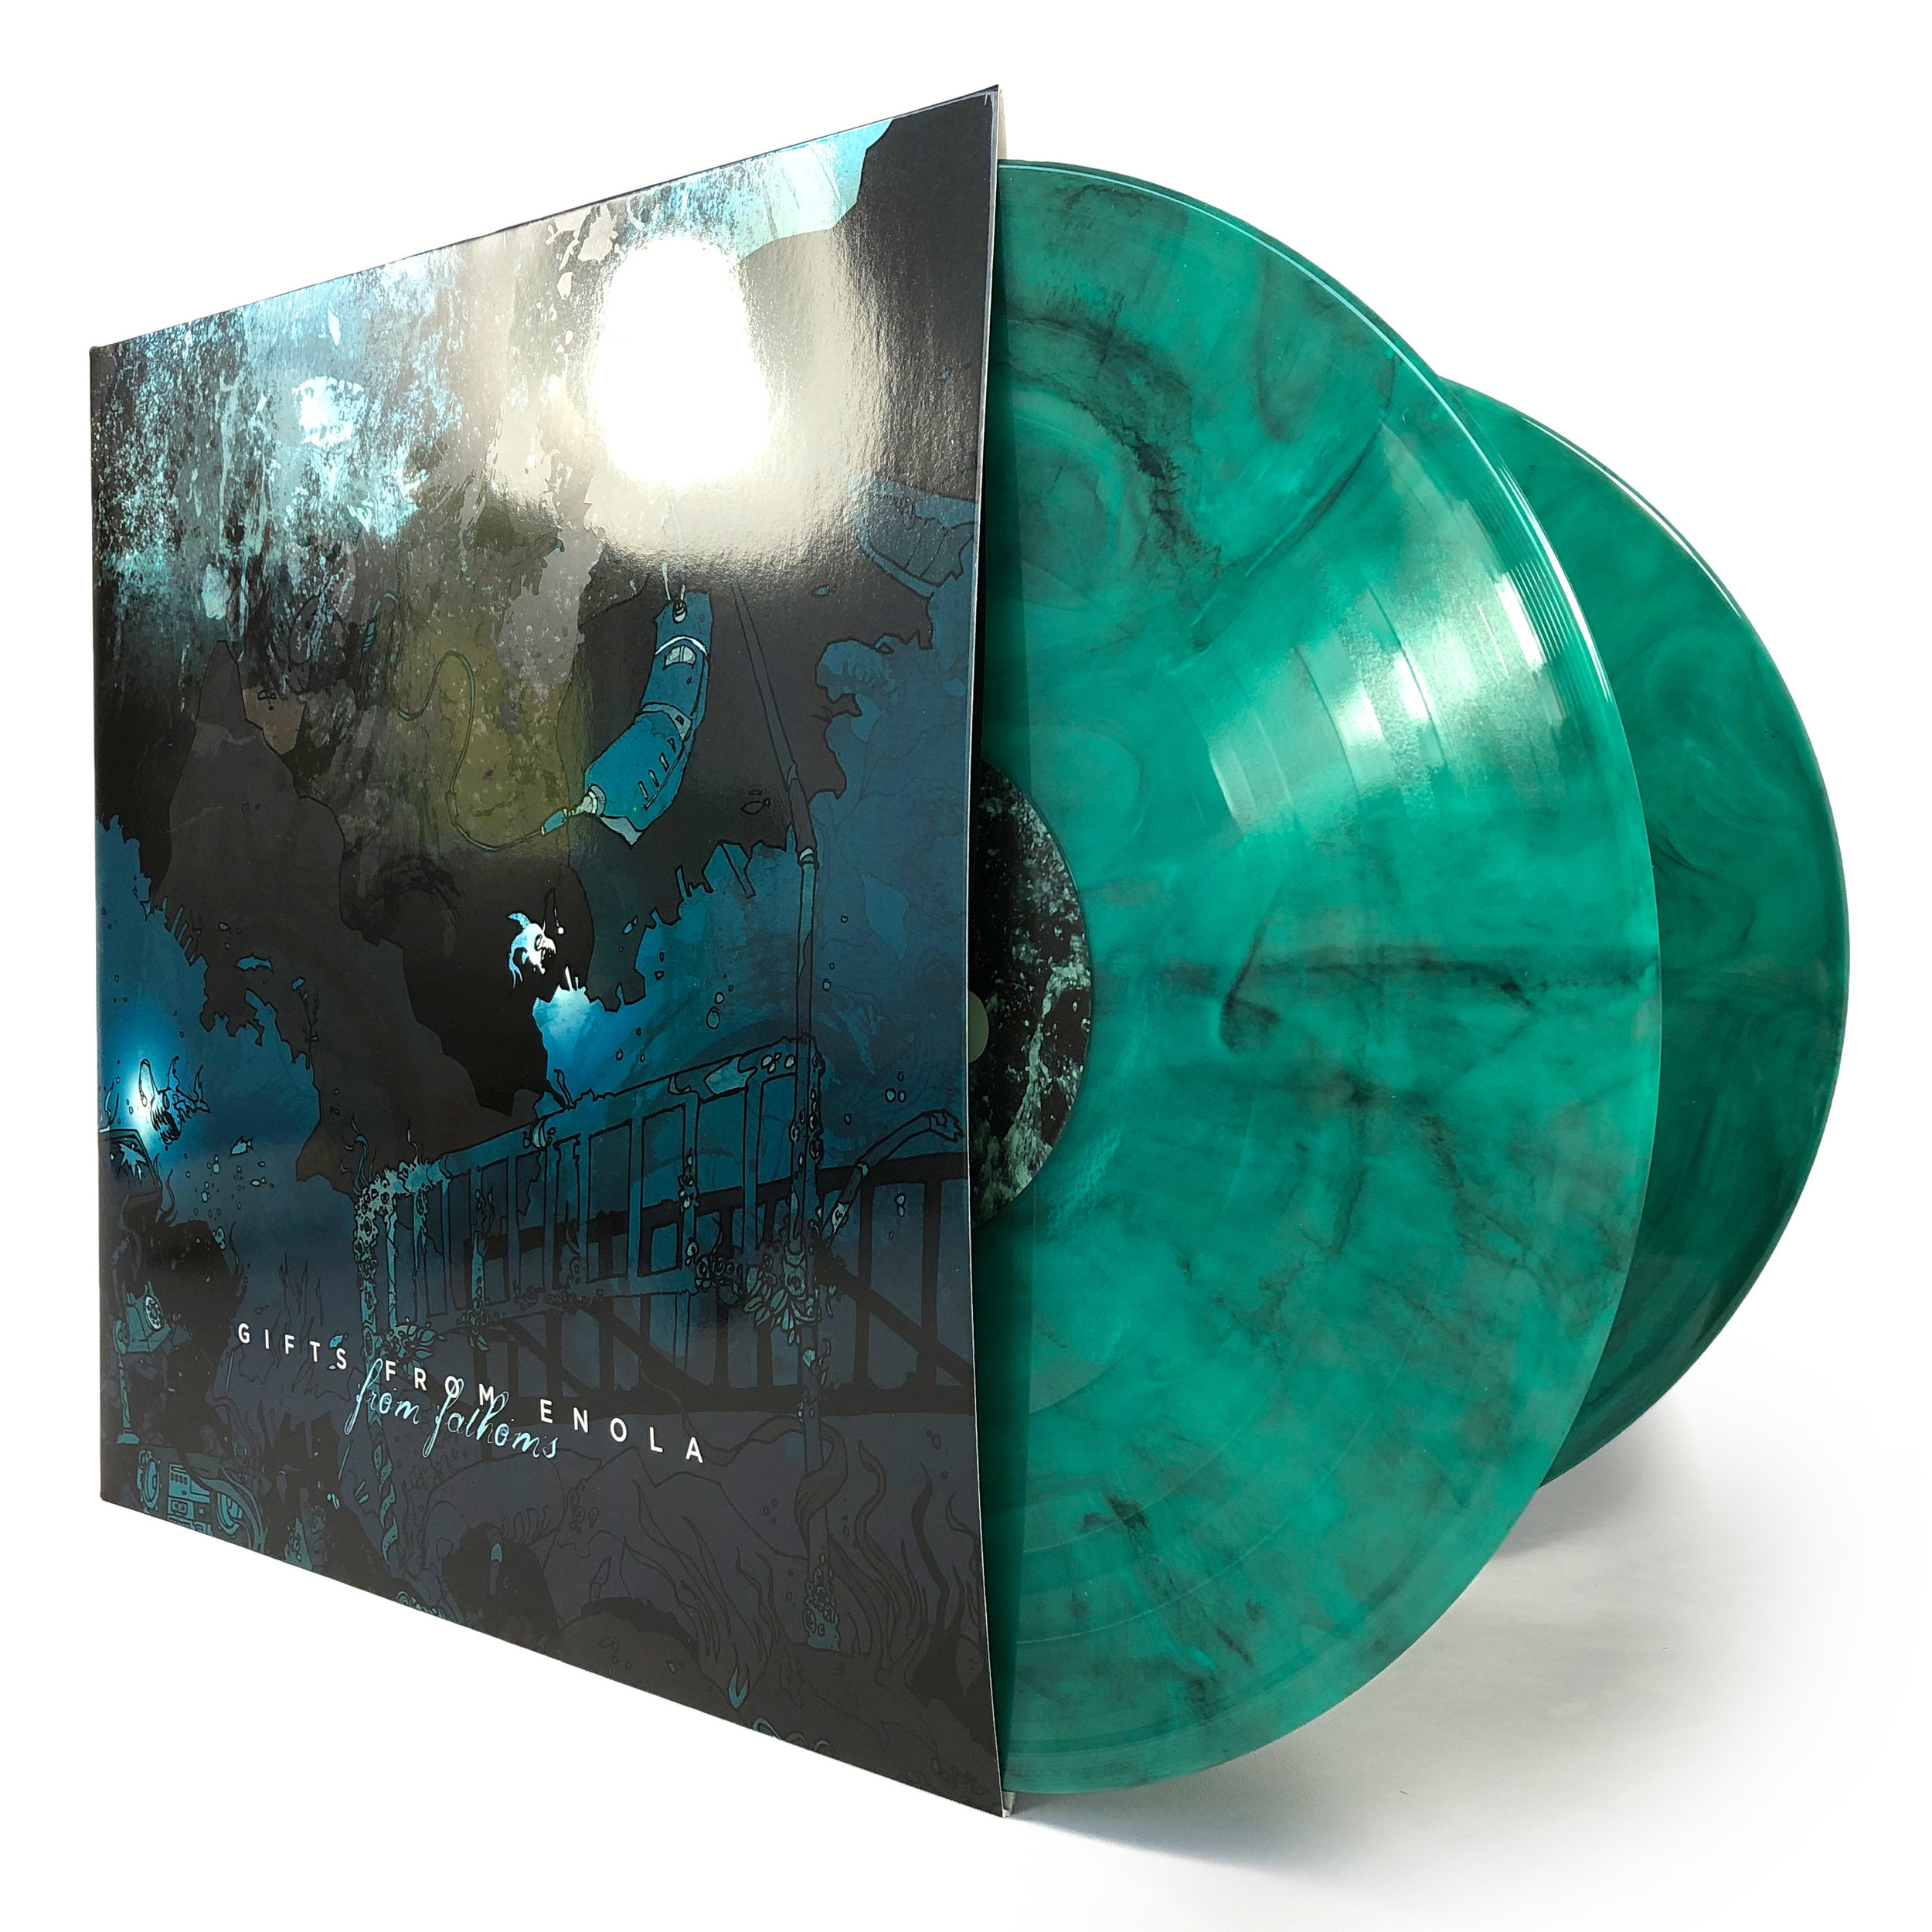 Gifts From Enola • From Fathoms [2xLP] - Released on March 8th, 2019. Limited to 300 copies.